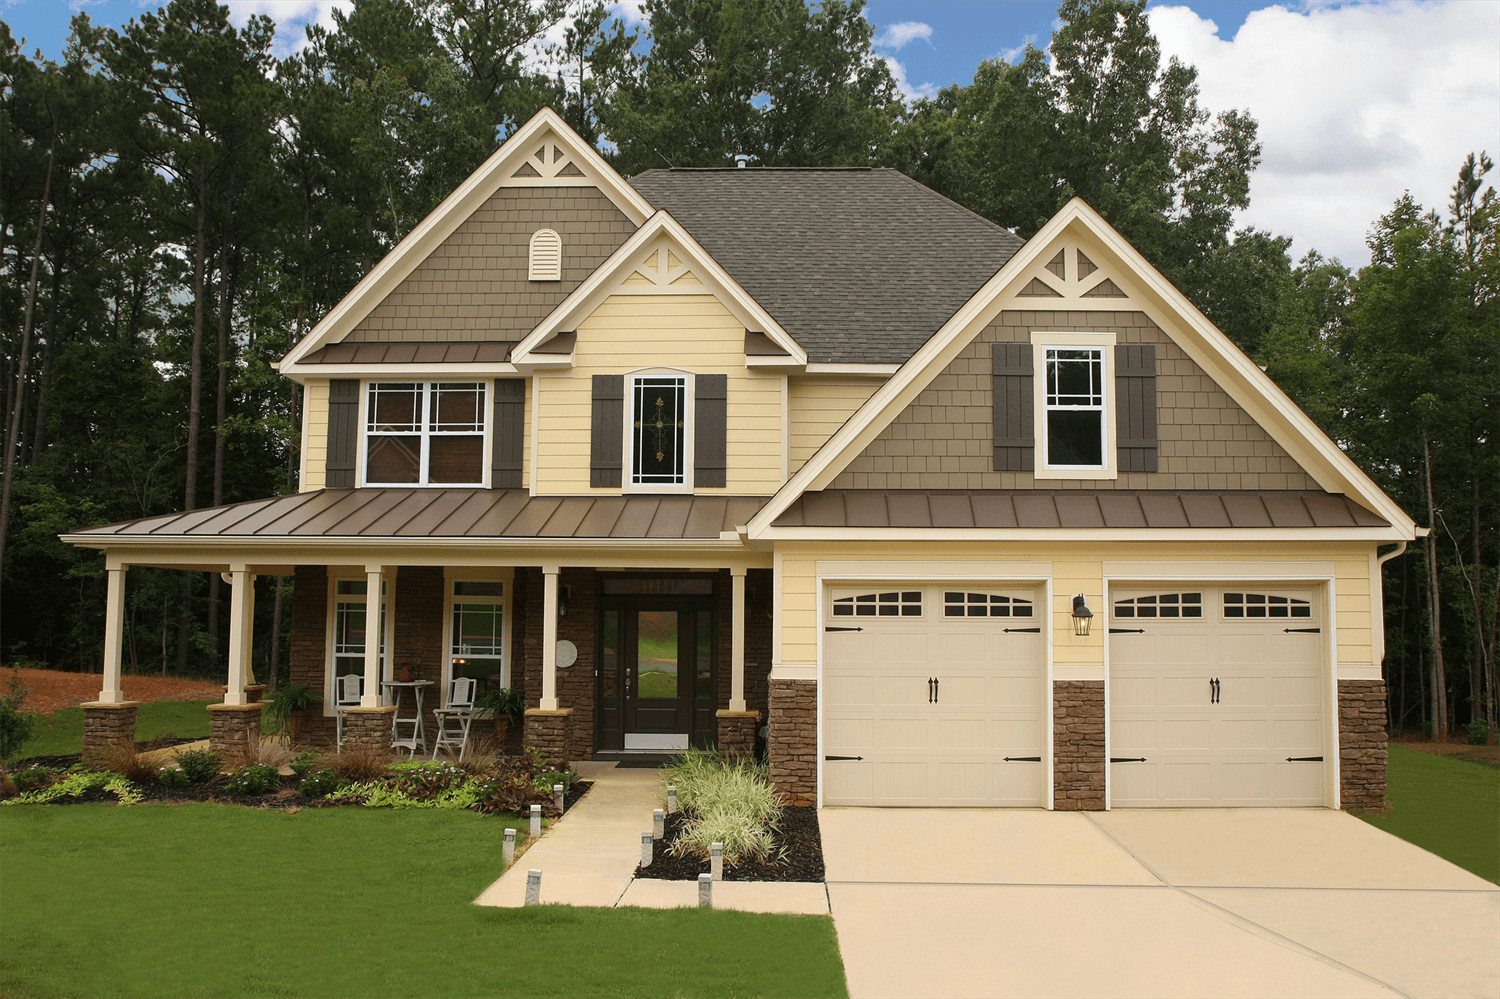 Siding products premier home commercial siding - Best exterior paint for hardiplank siding ...